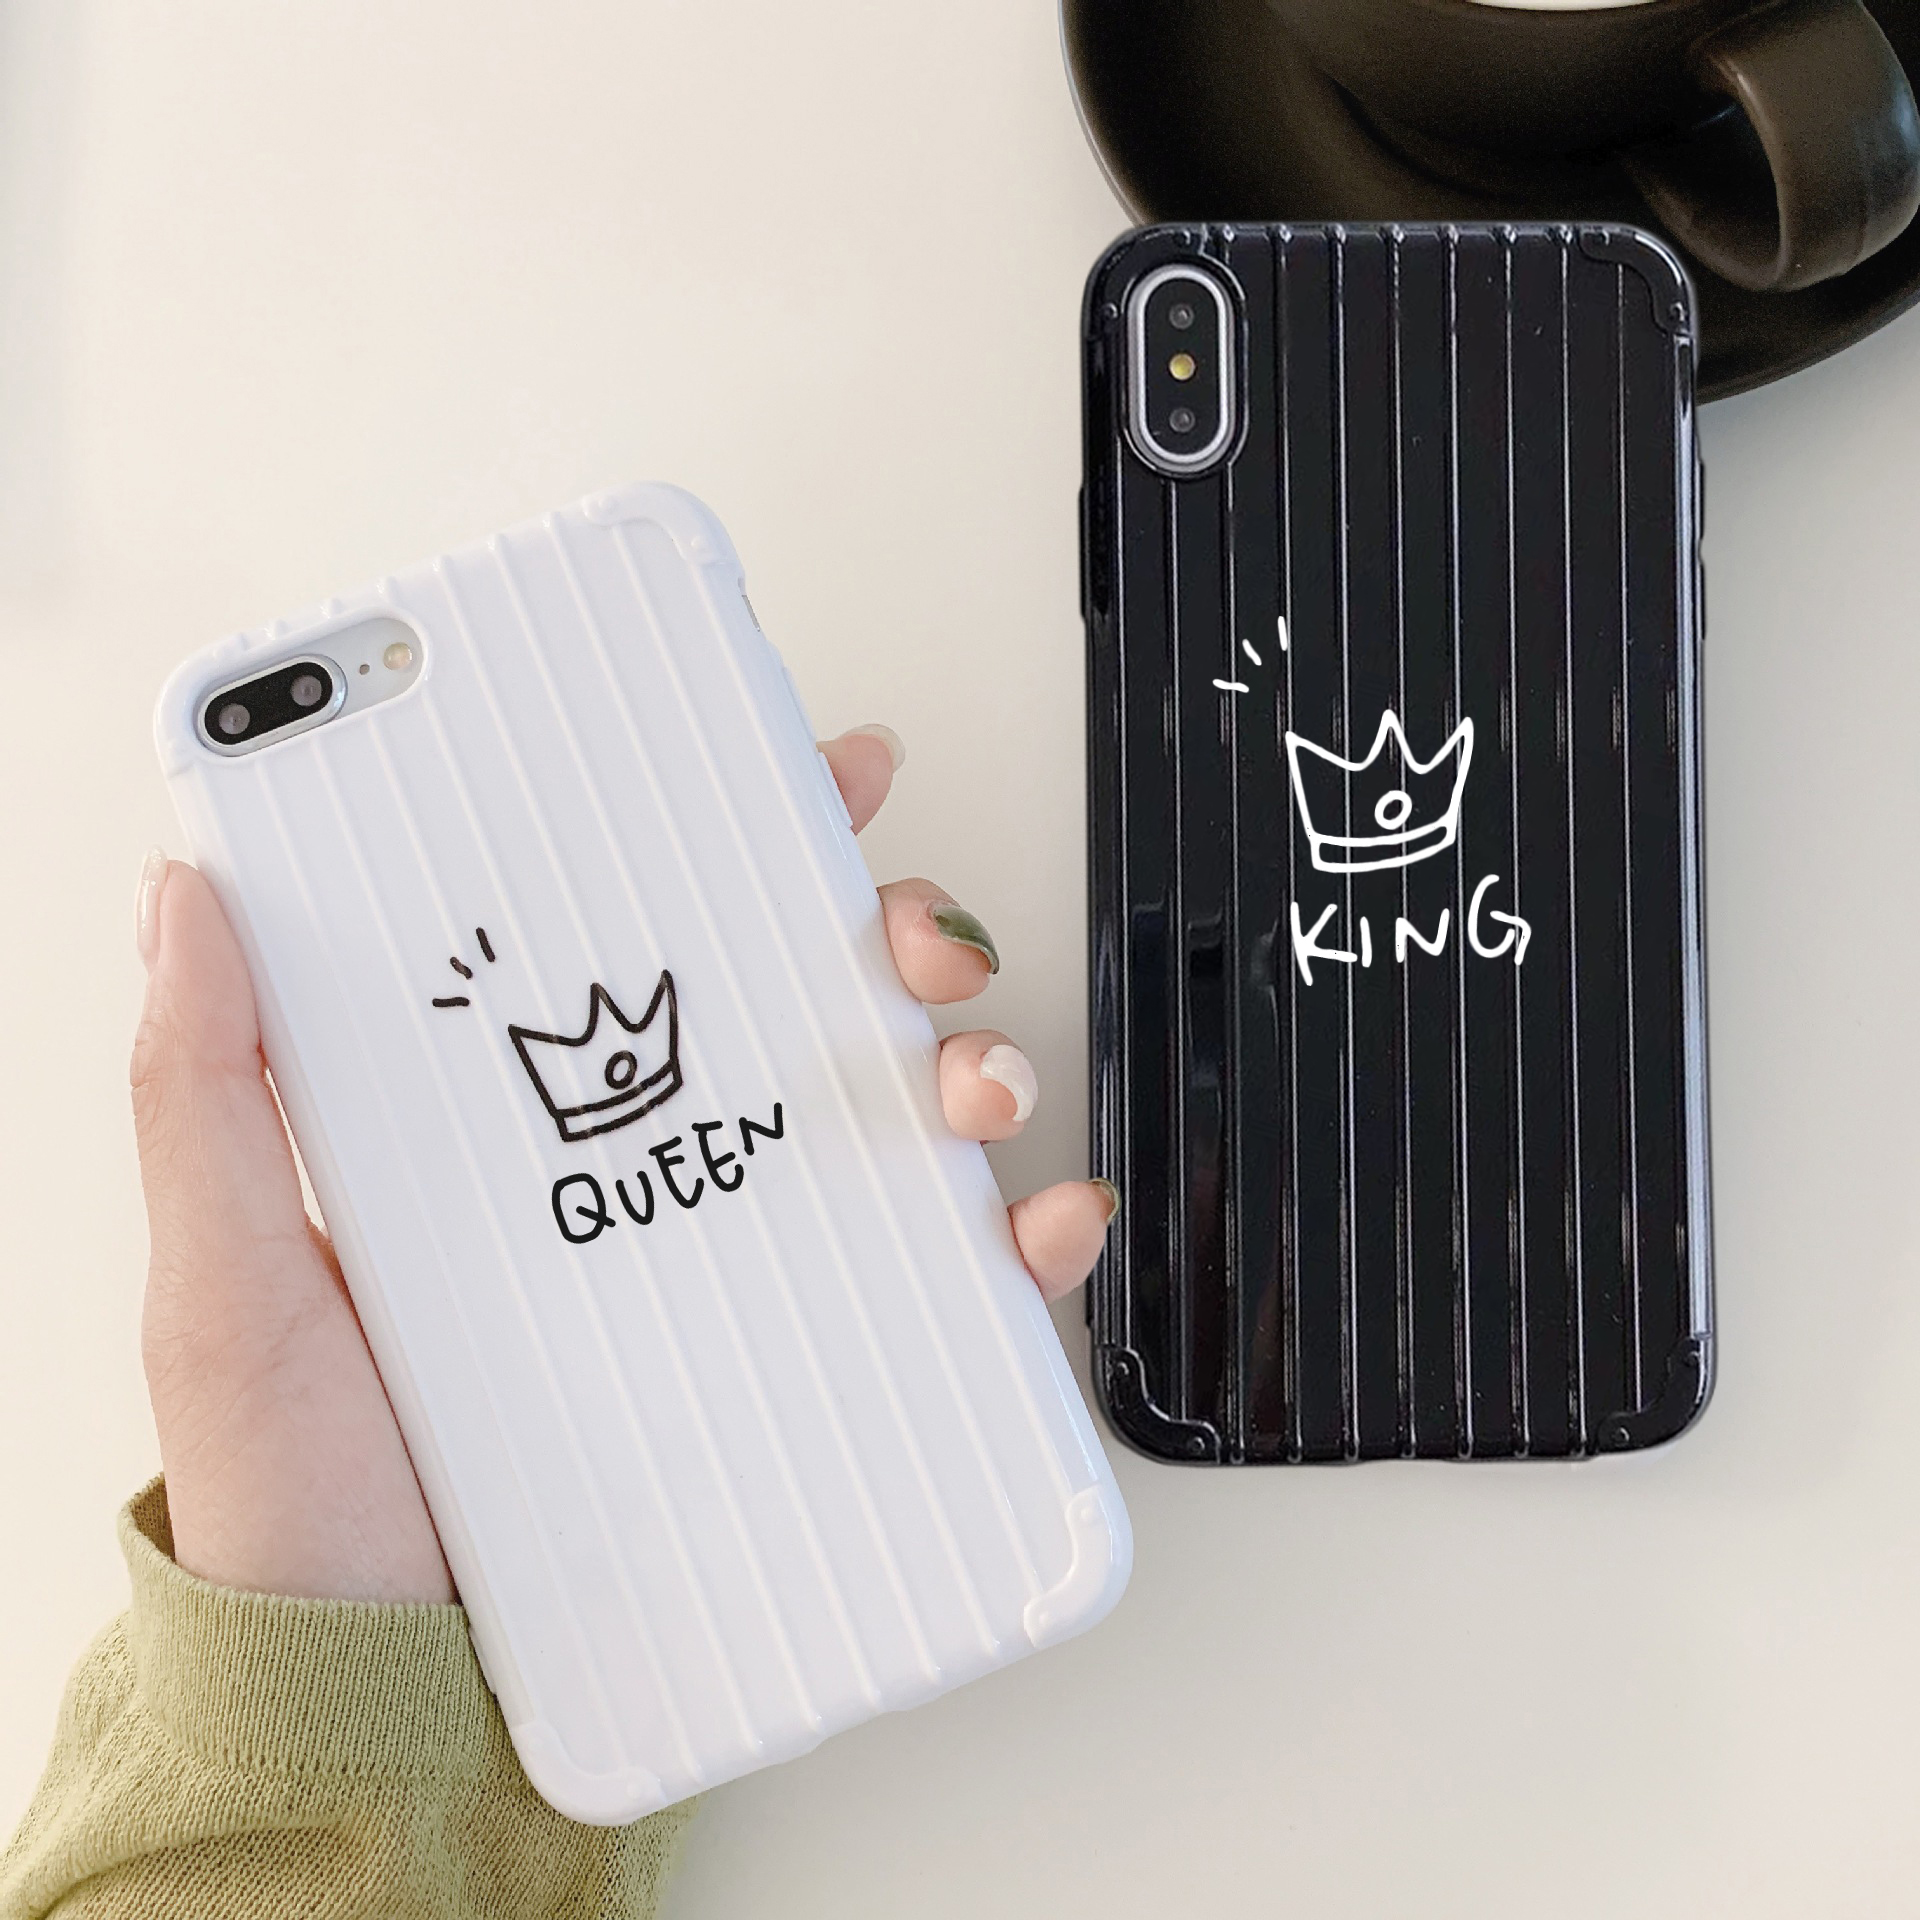 Cute King Queen Couple Soft Case For Apple Iphone 7 8 X 6 S 6s Plus Case Cover For Coque Funda Iphone Xs Max Xr 8plus 7plus Case Fitted Cases Aliexpress